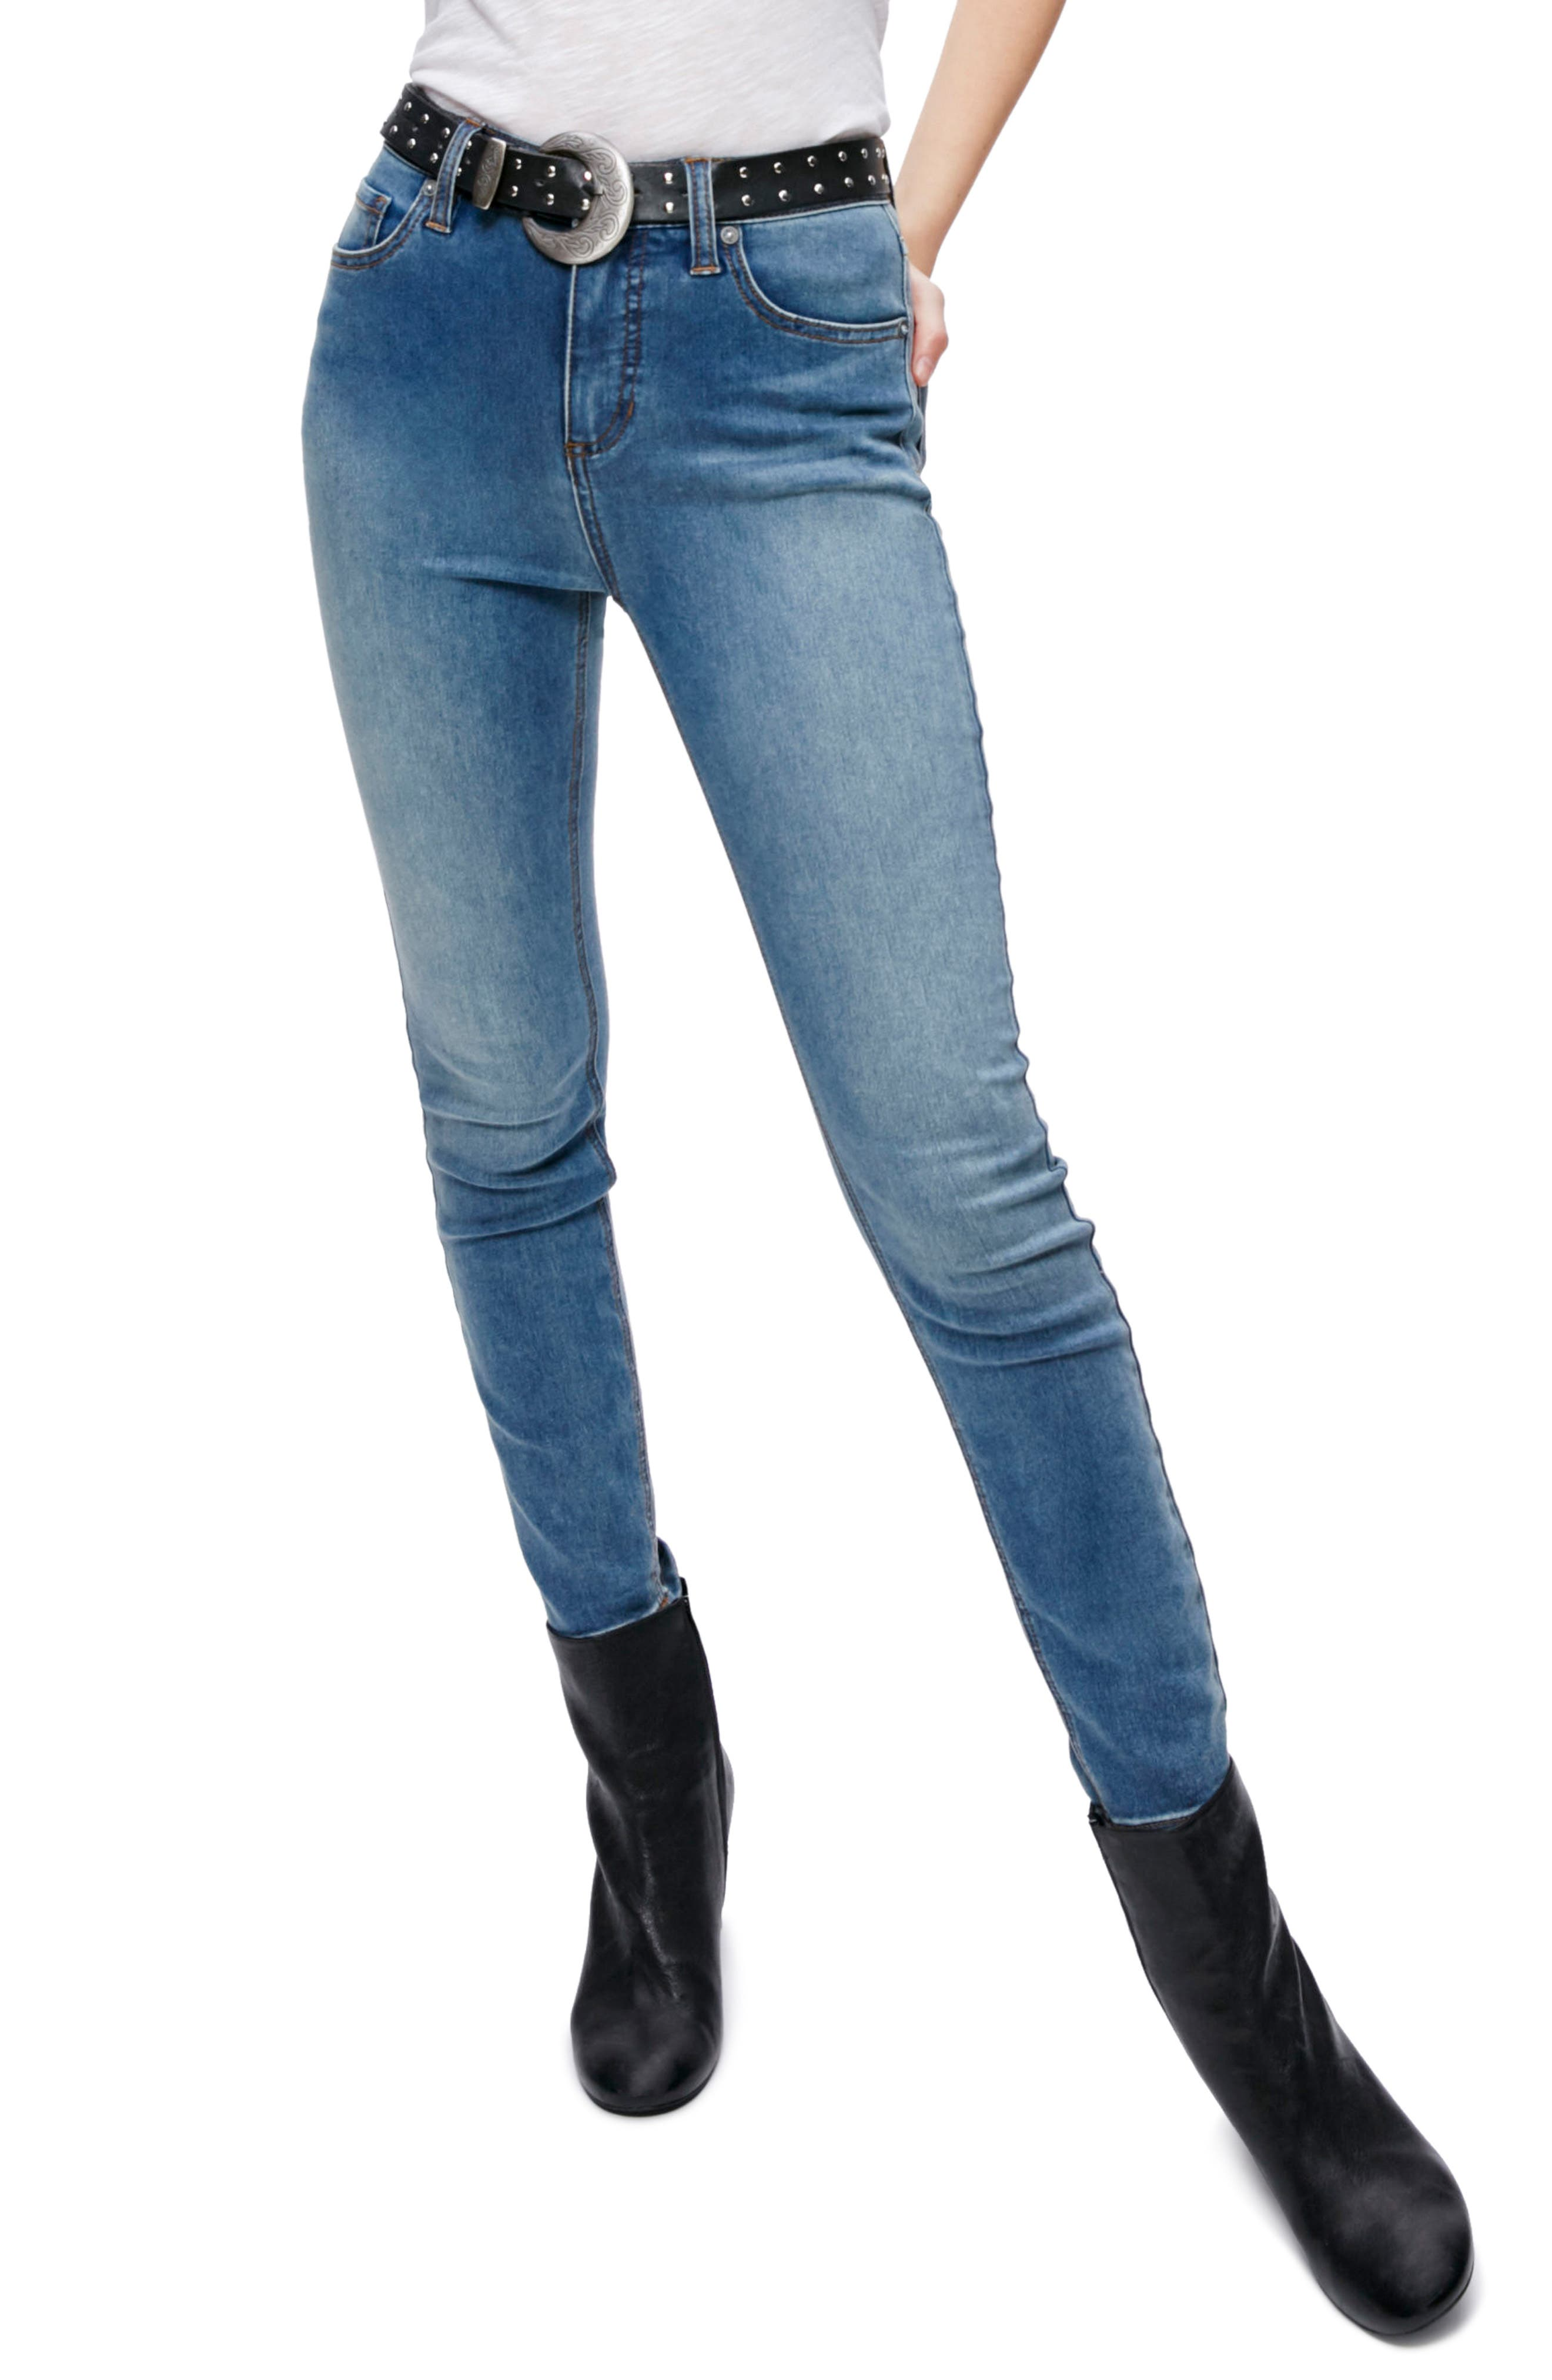 Alternate Image 1 Selected - Free People Gummy High Waist Jeans